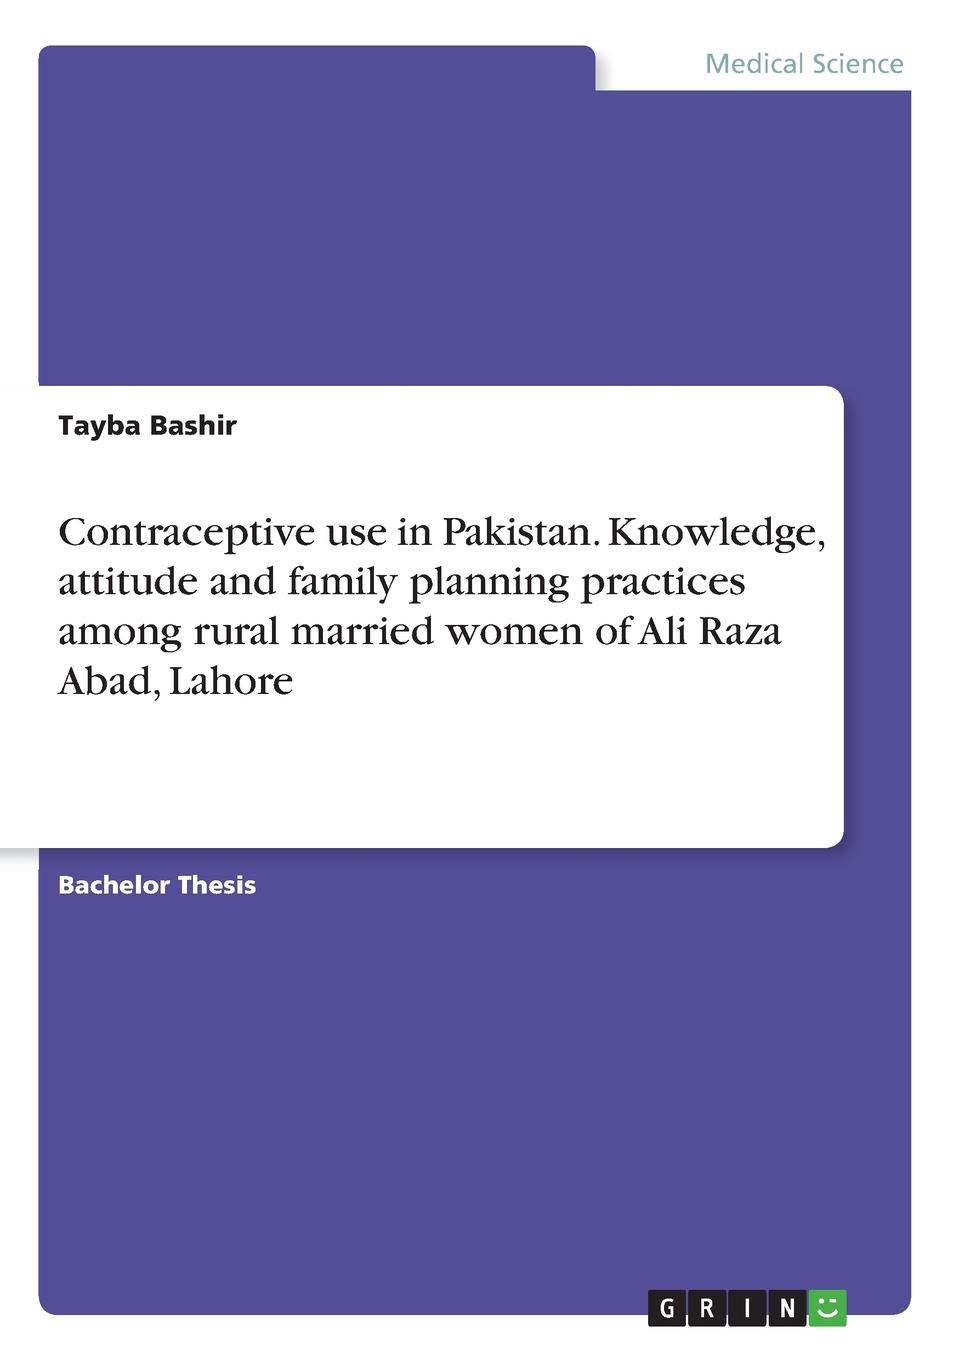 Tayba Bashir Contraceptive use in Pakistan. Knowledge, attitude and family planning practices among rural married women of Ali Raza Abad, Lahore